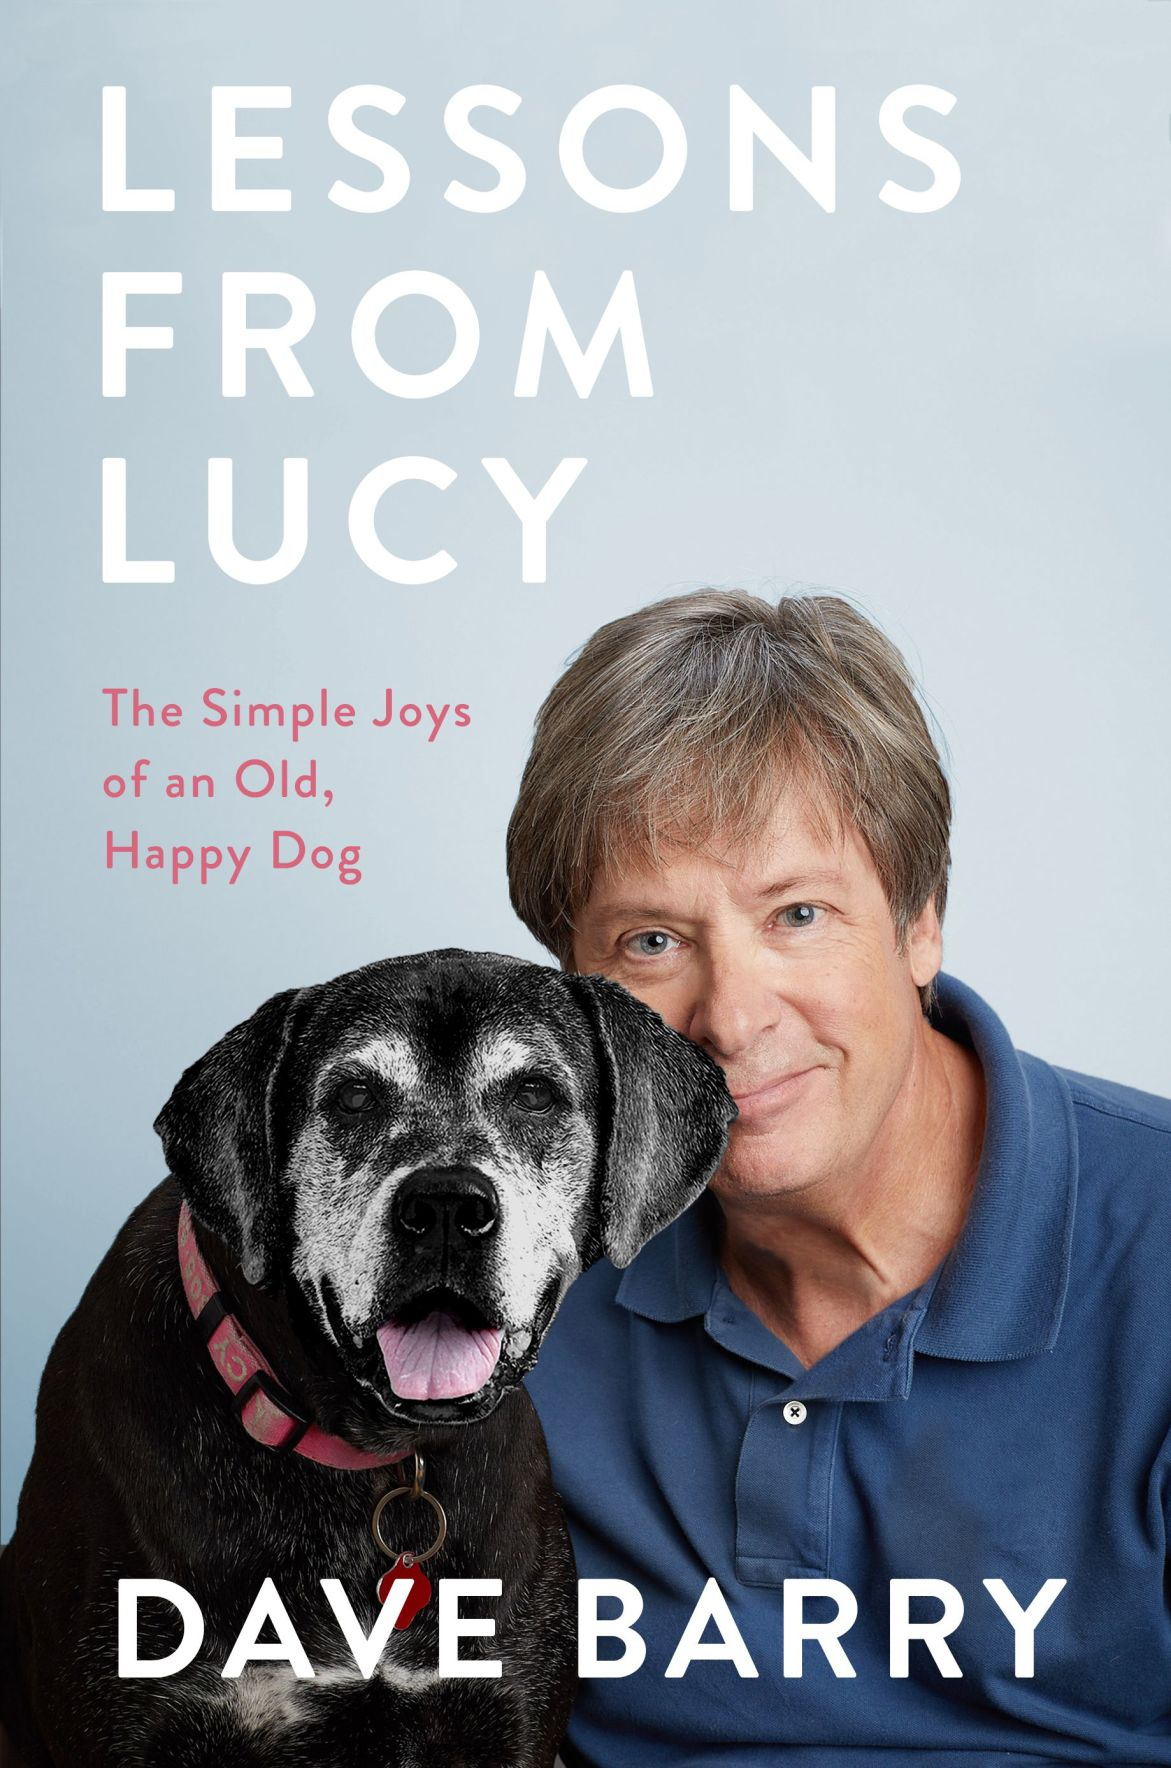 Barry's advice book shares new tricks from an old dog